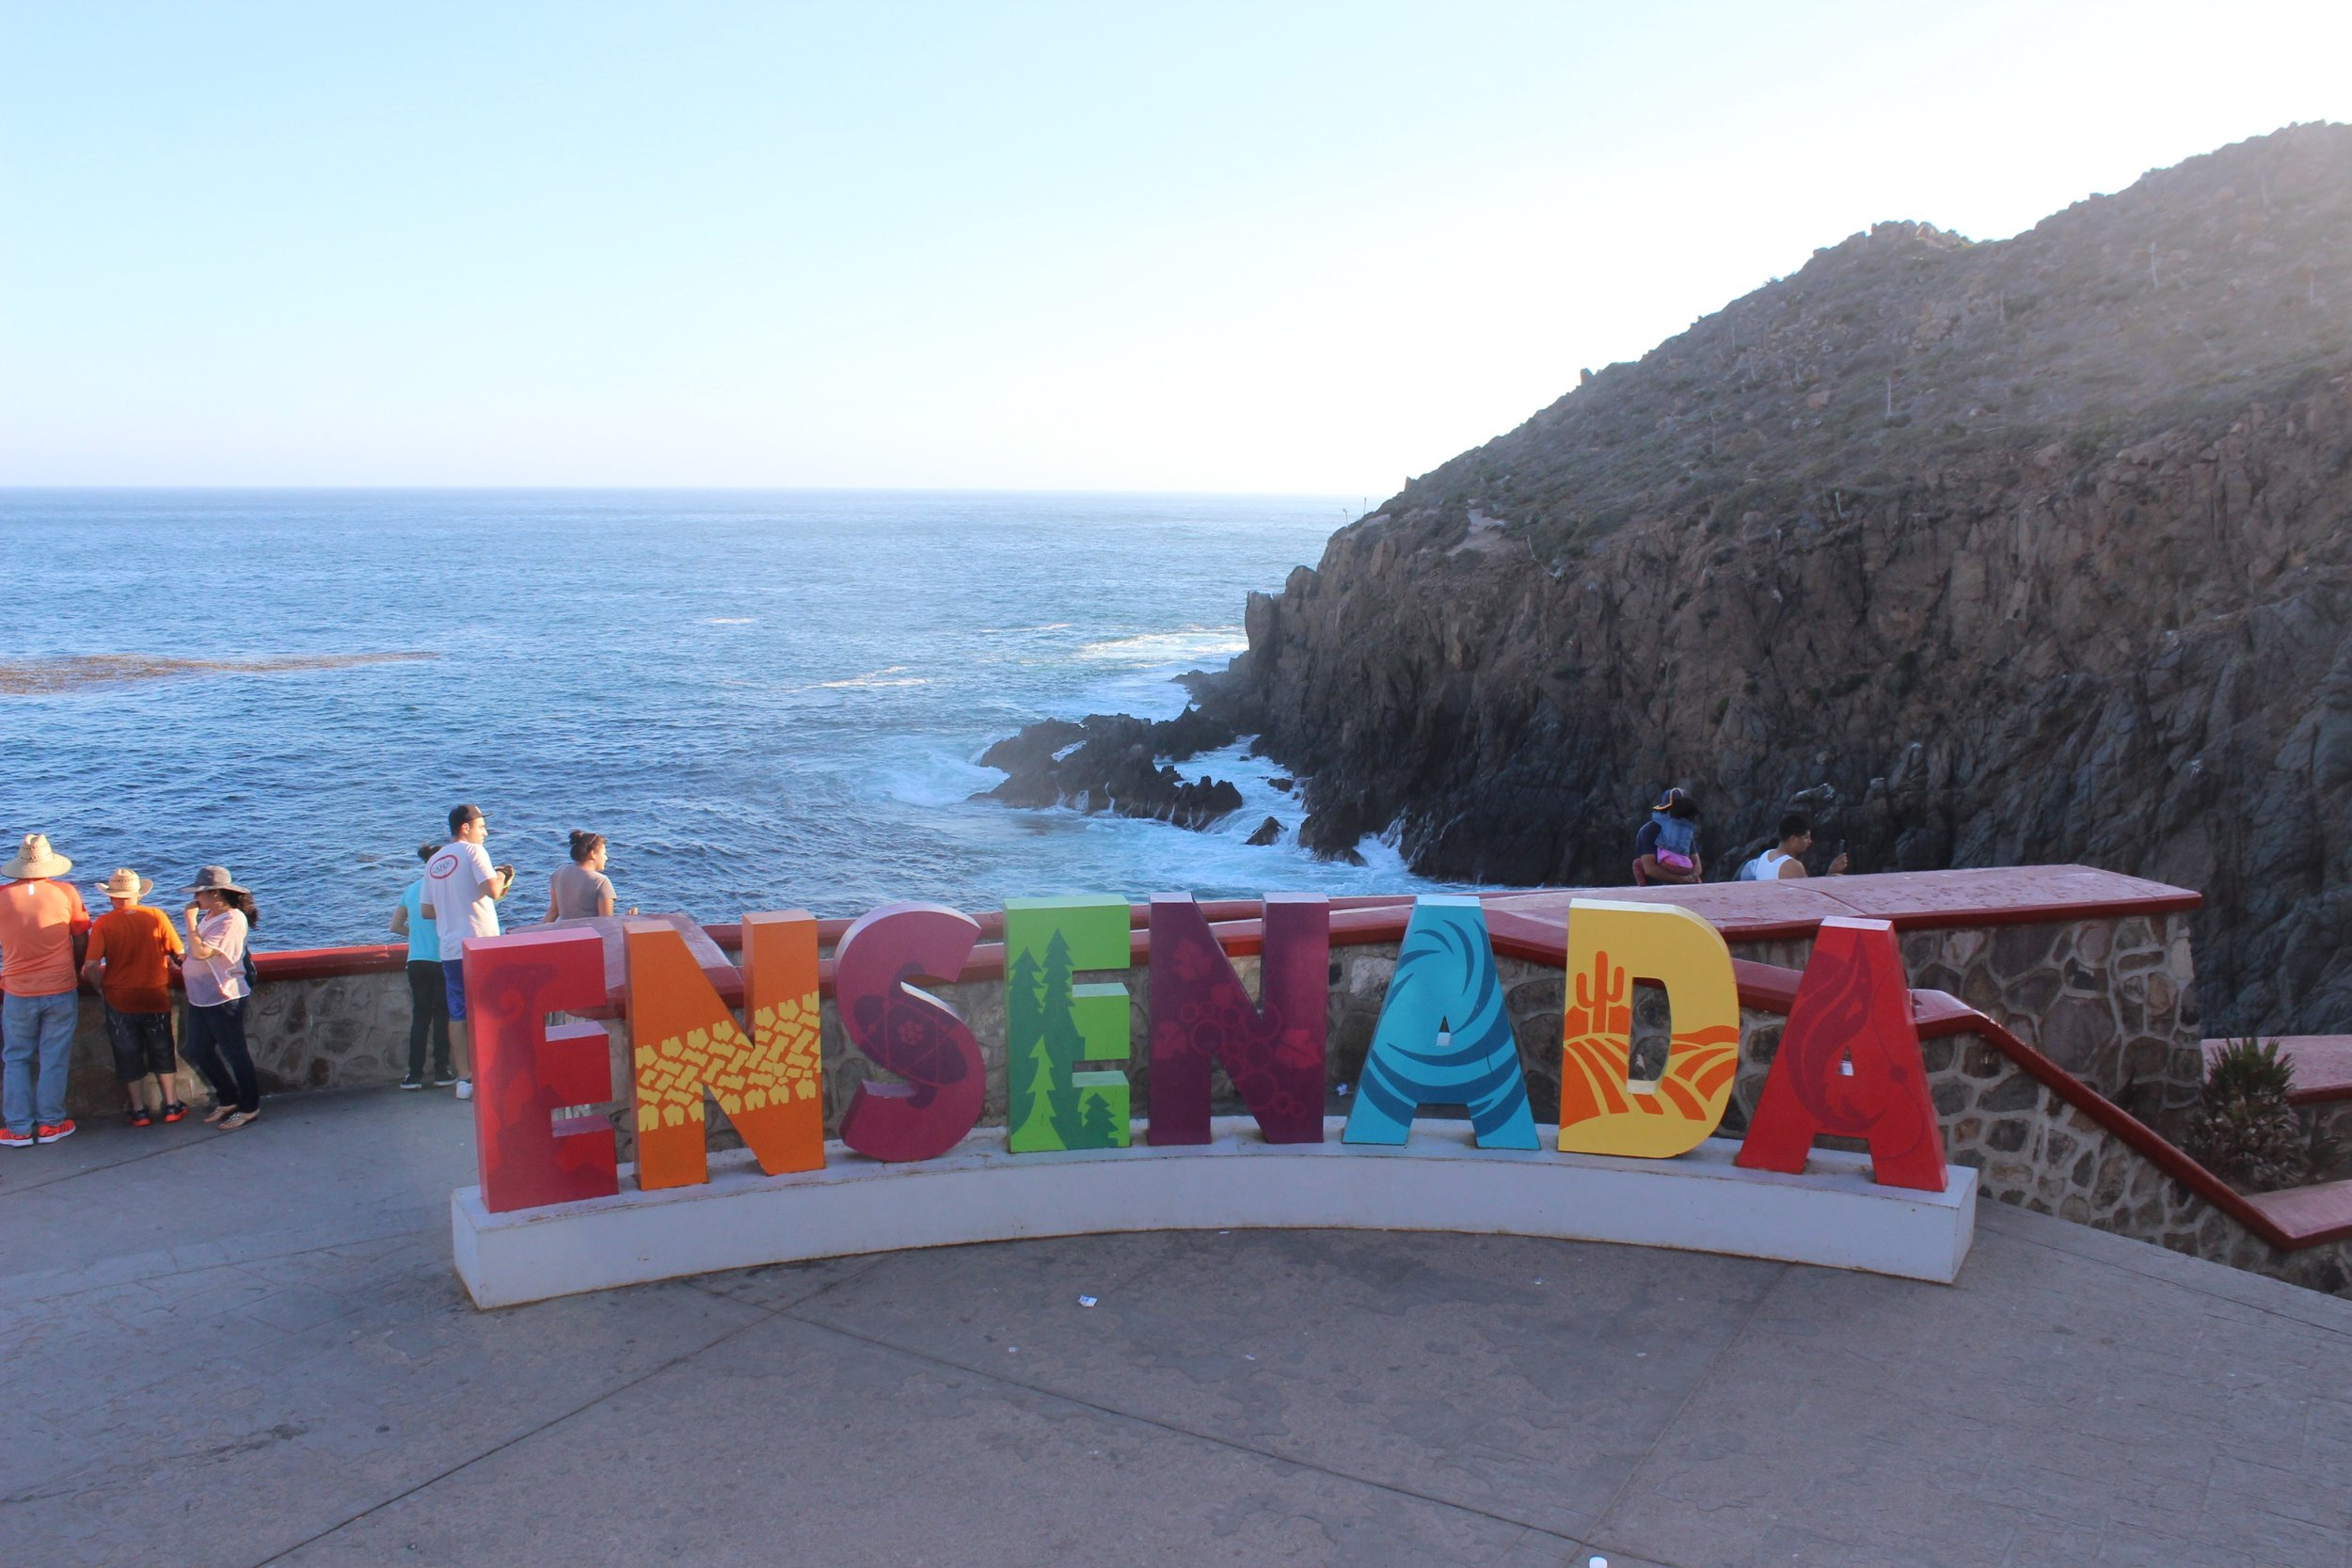 Pictures of ensenada mexico